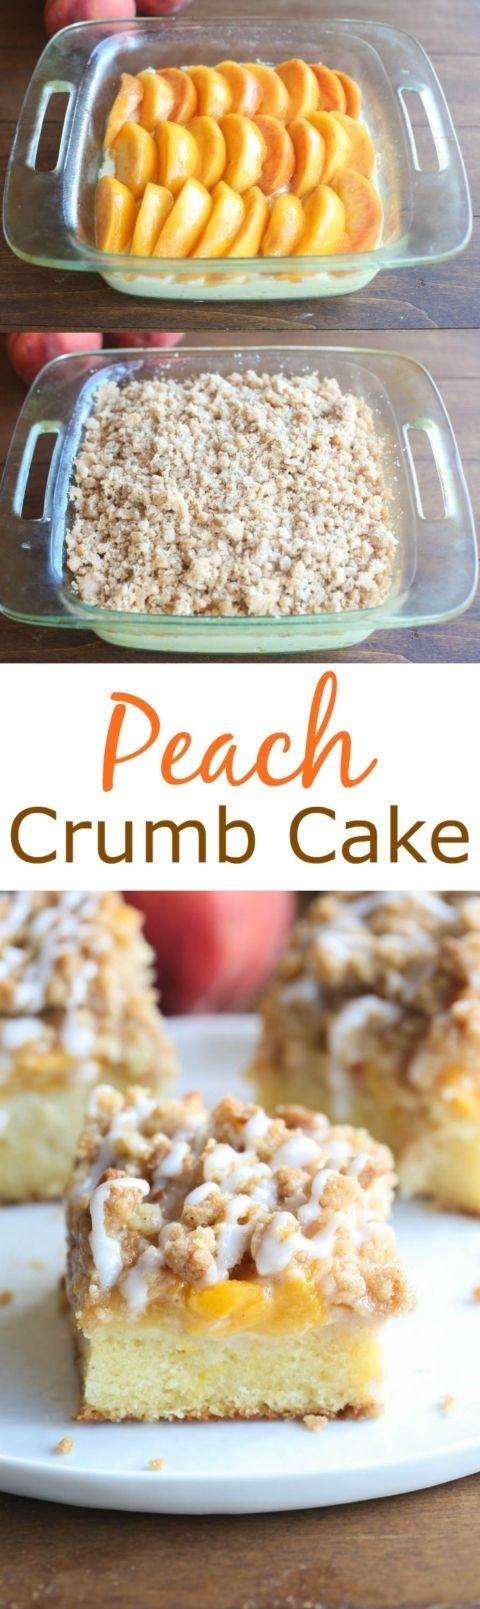 Peach Crumb Cake - a soft and delicious cake layered with fresh peaches and a sweet cinnamon crumb topping. Makes a delicious brunch or serve warm with vanilla ice cream.